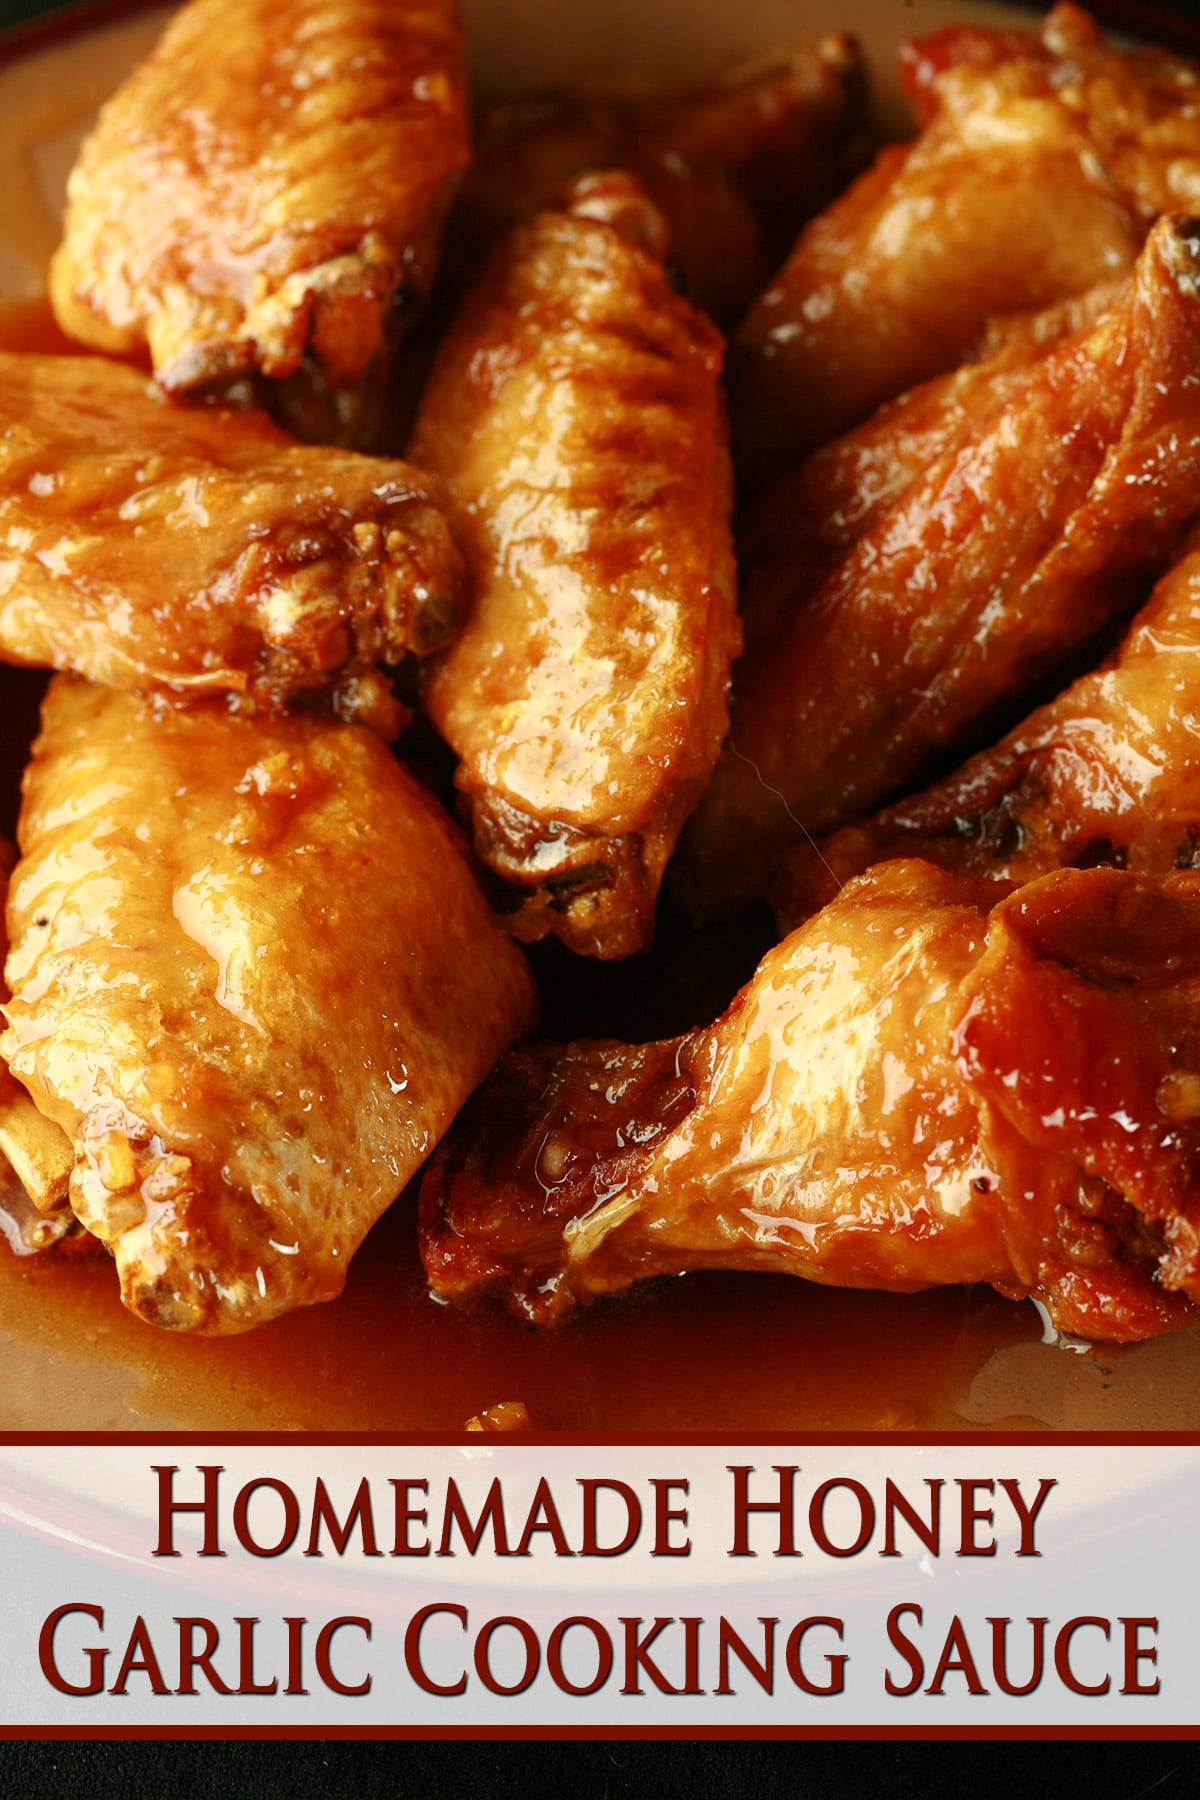 A close up view of a pile of honey garlic glazed wings on a small brown plate.